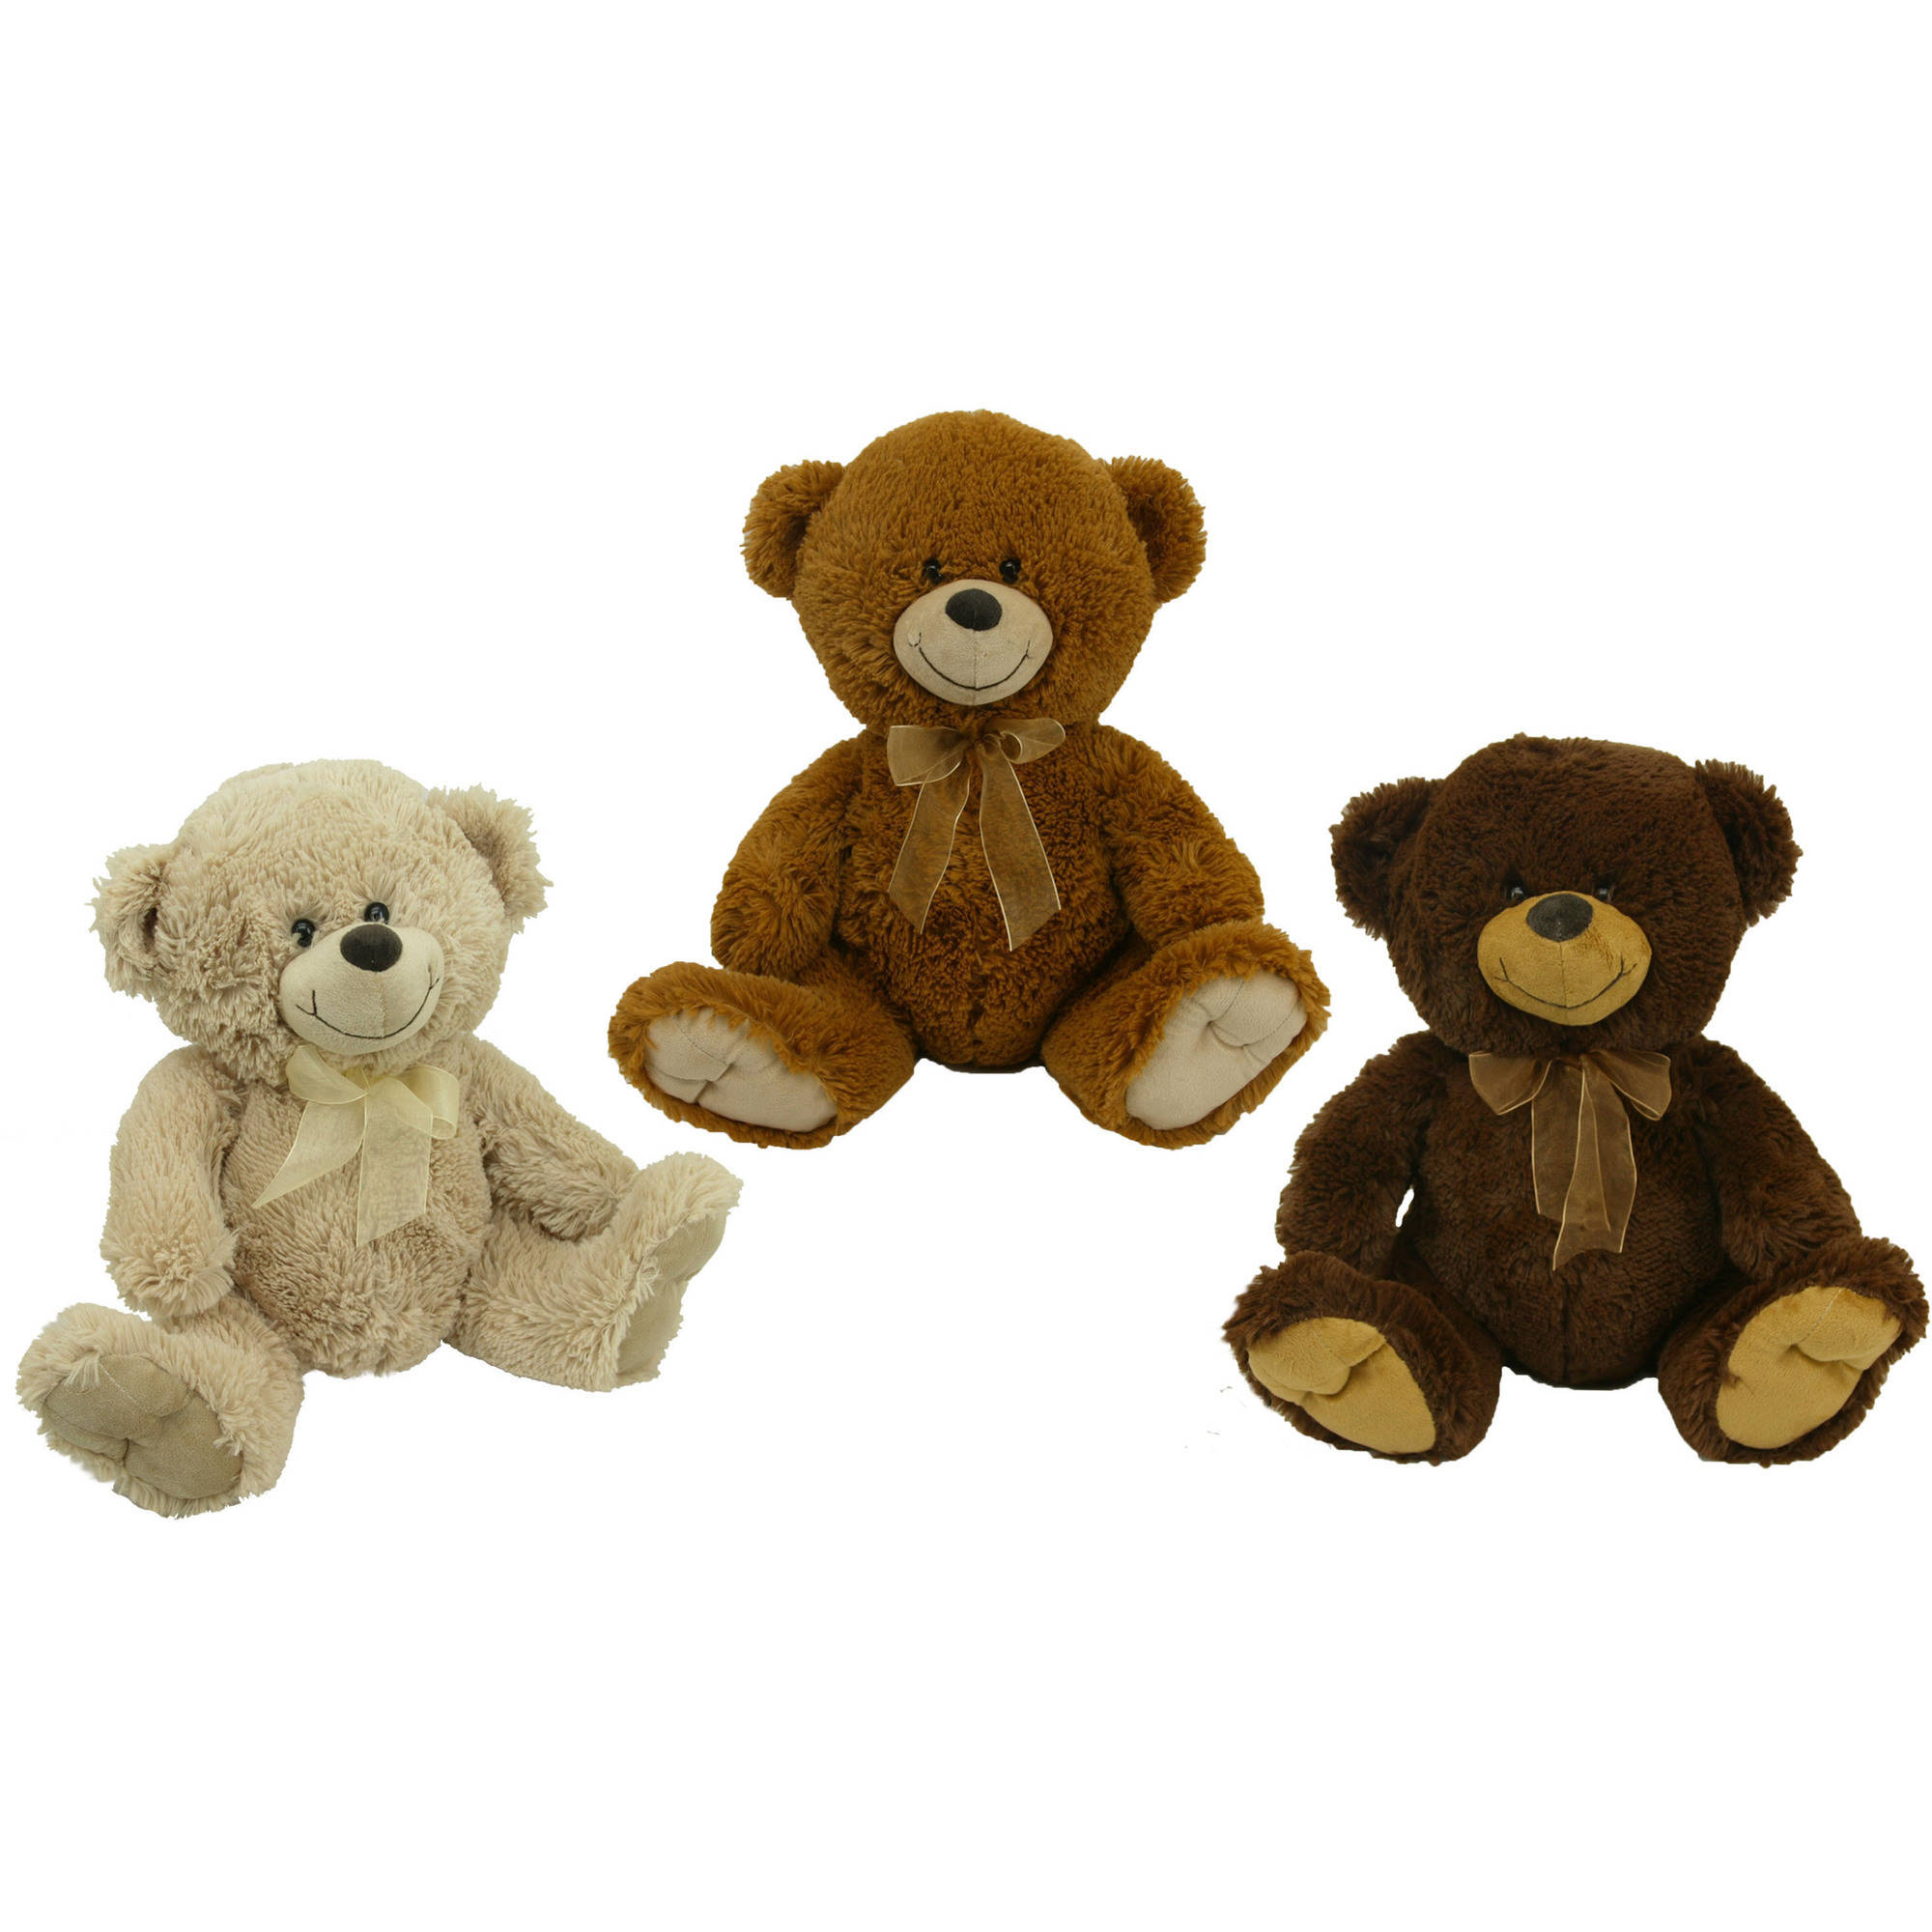 "19"" Snuggly and Cuddly Teddy Bear, Assorted Colors"